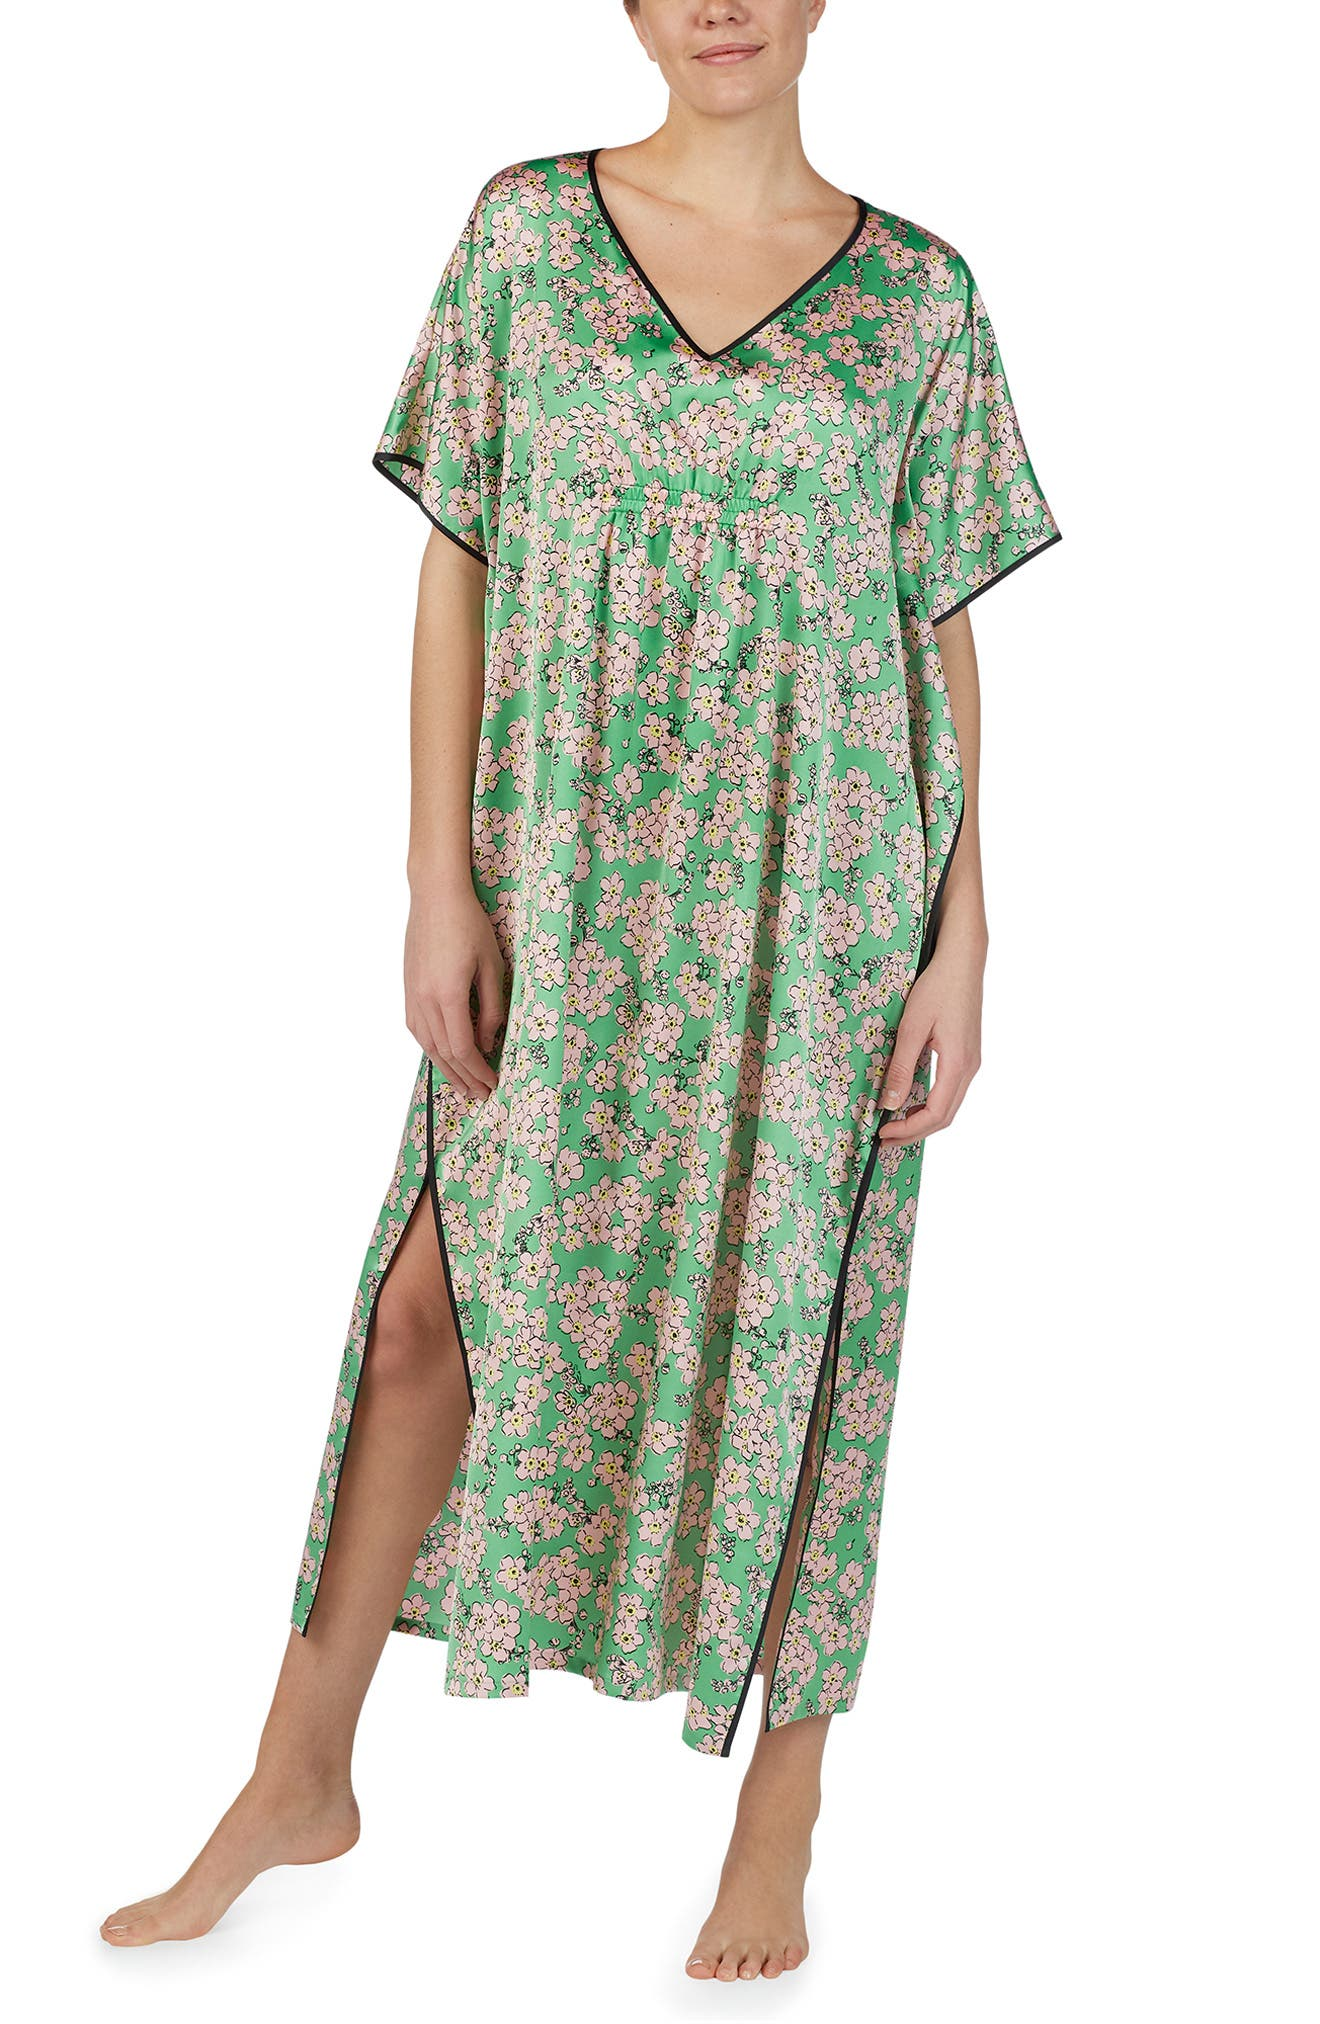 Kate Spade New York Fresh Floral Satin Caftan